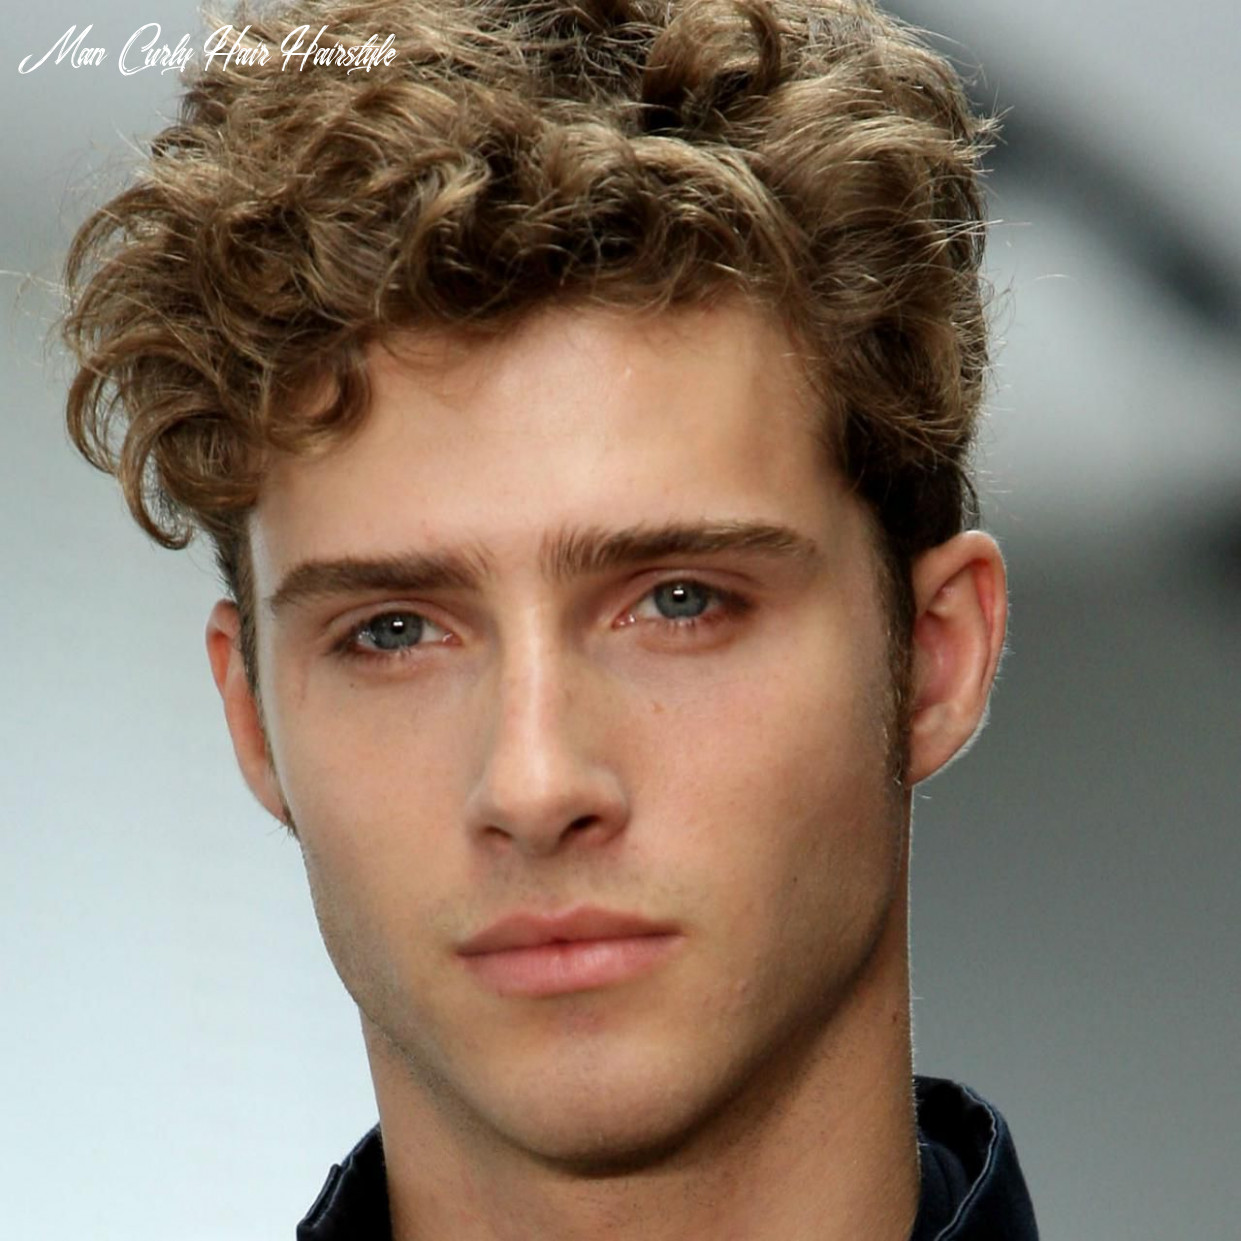 Having trouble with your curly hair? man curly hair hairstyle